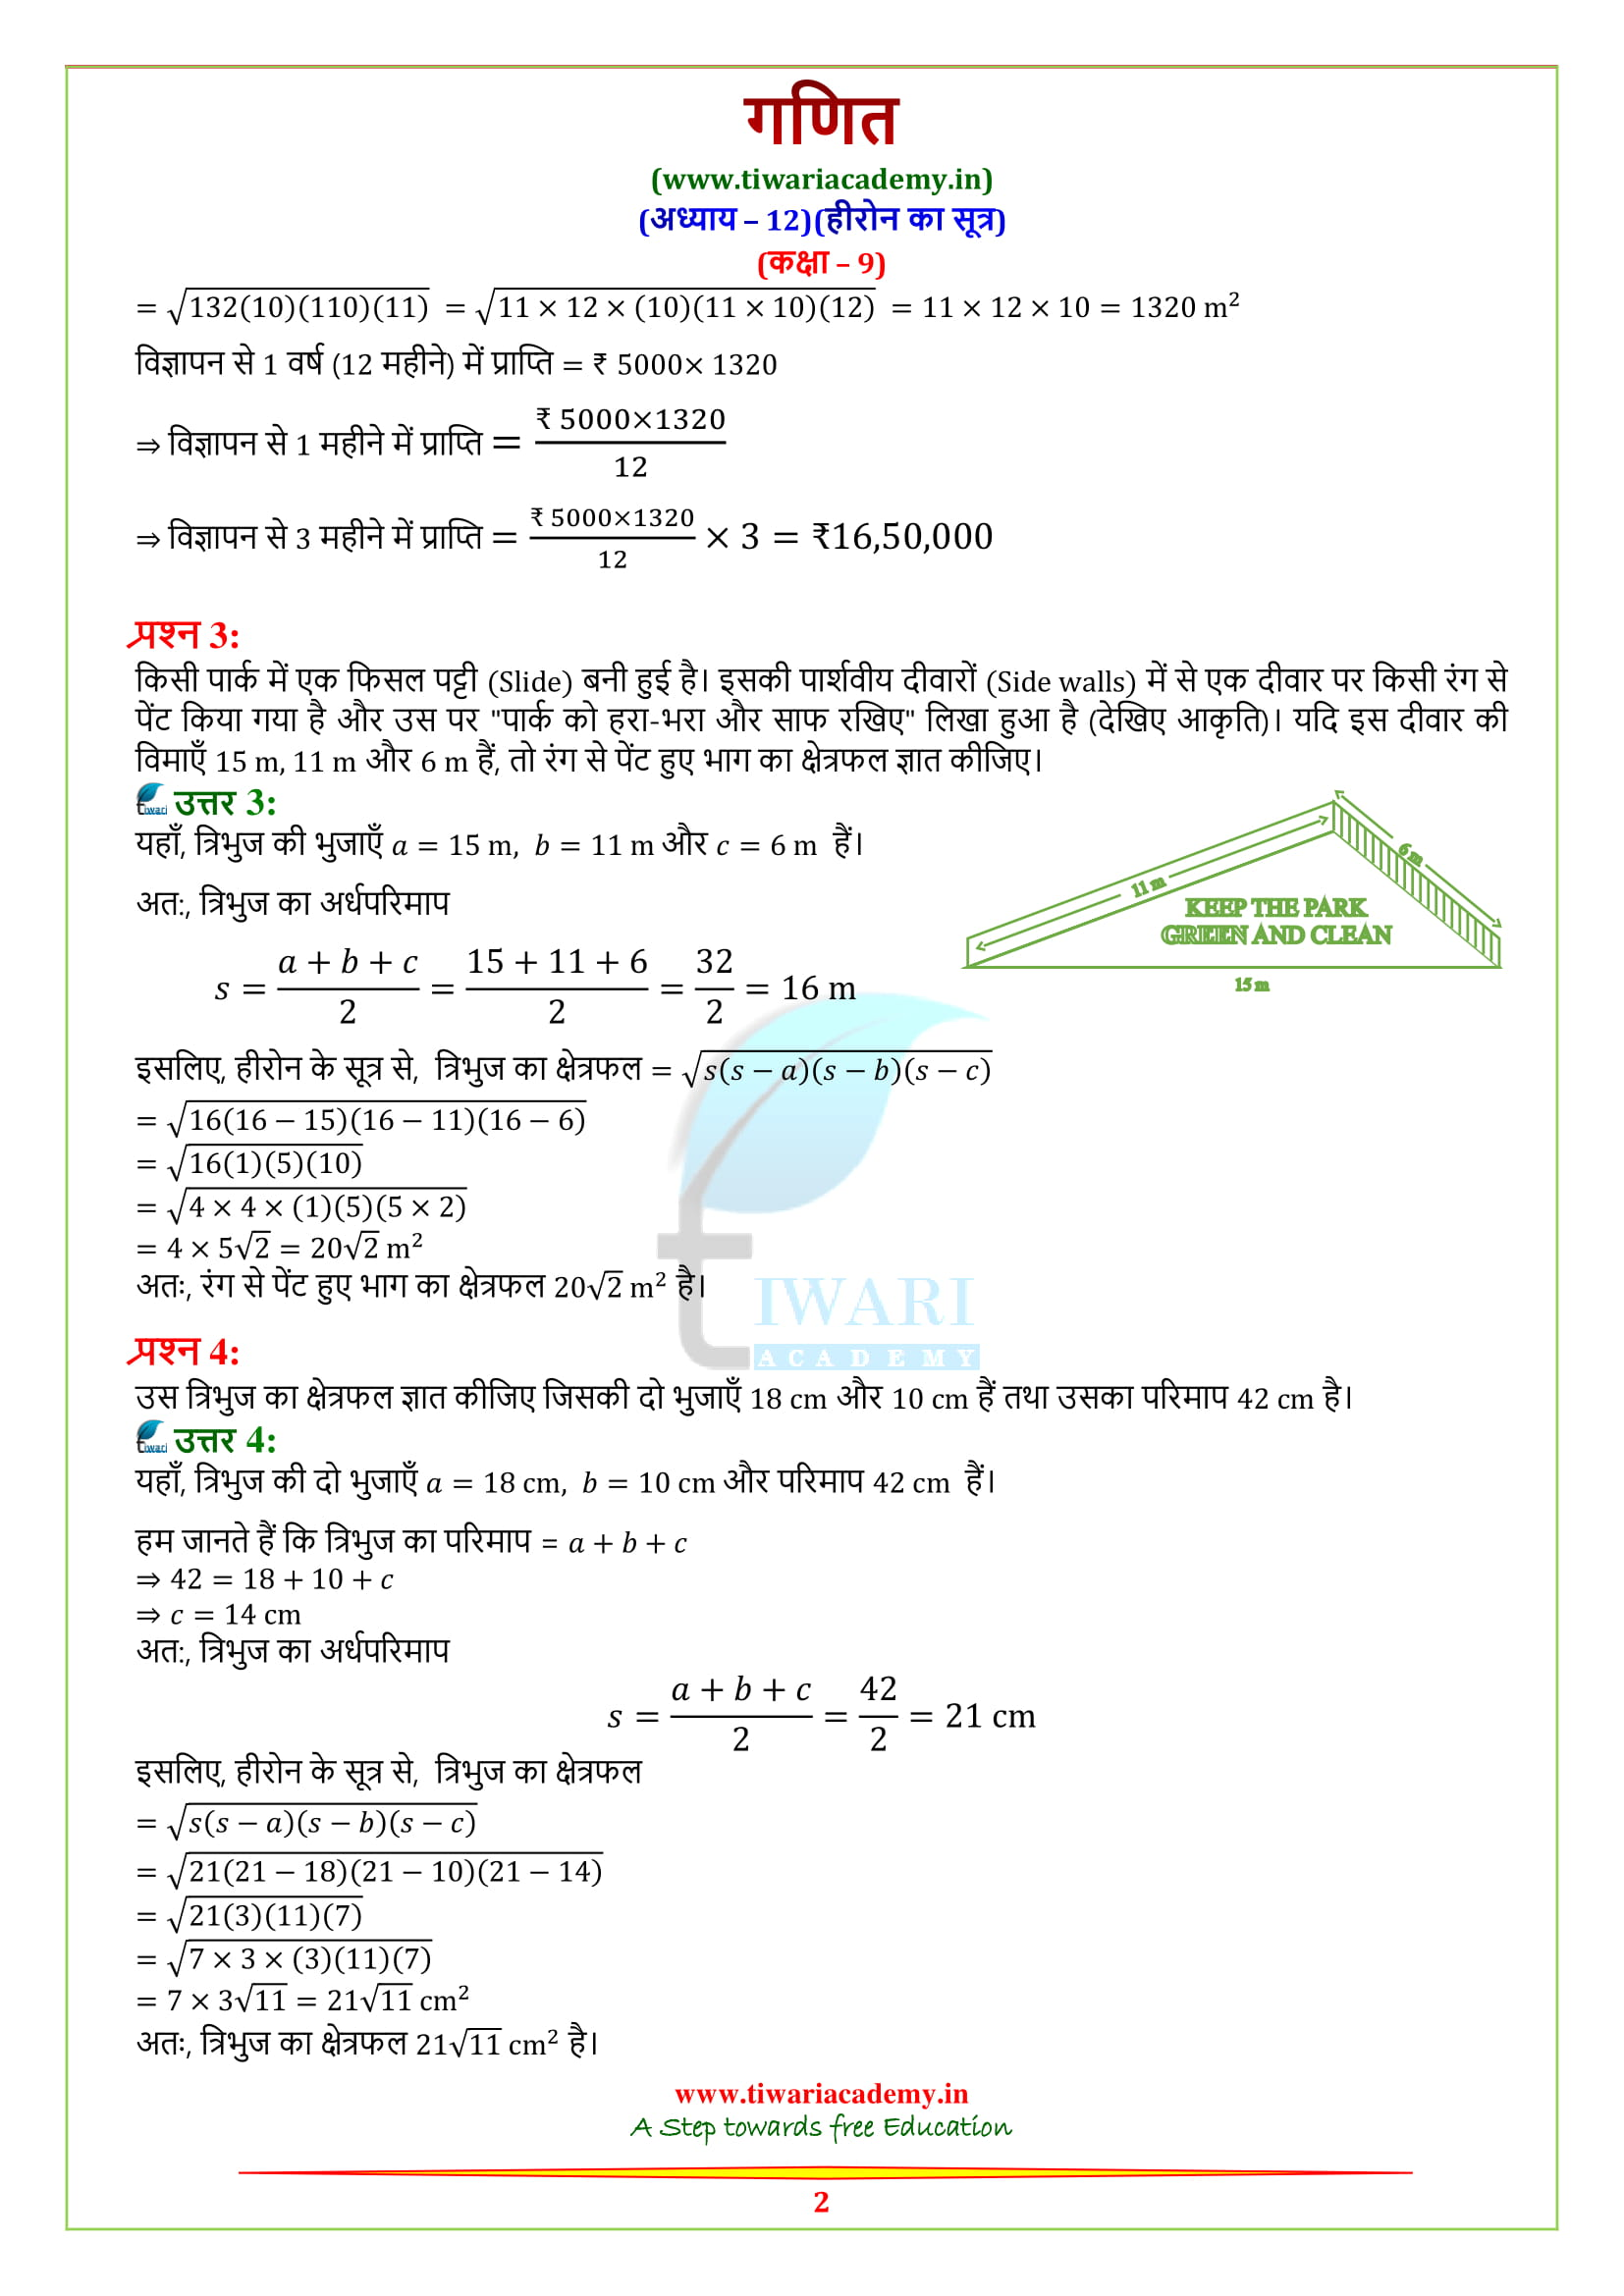 9 Maths Exercise 12.1 solutions updated for new syllabus 2018-19